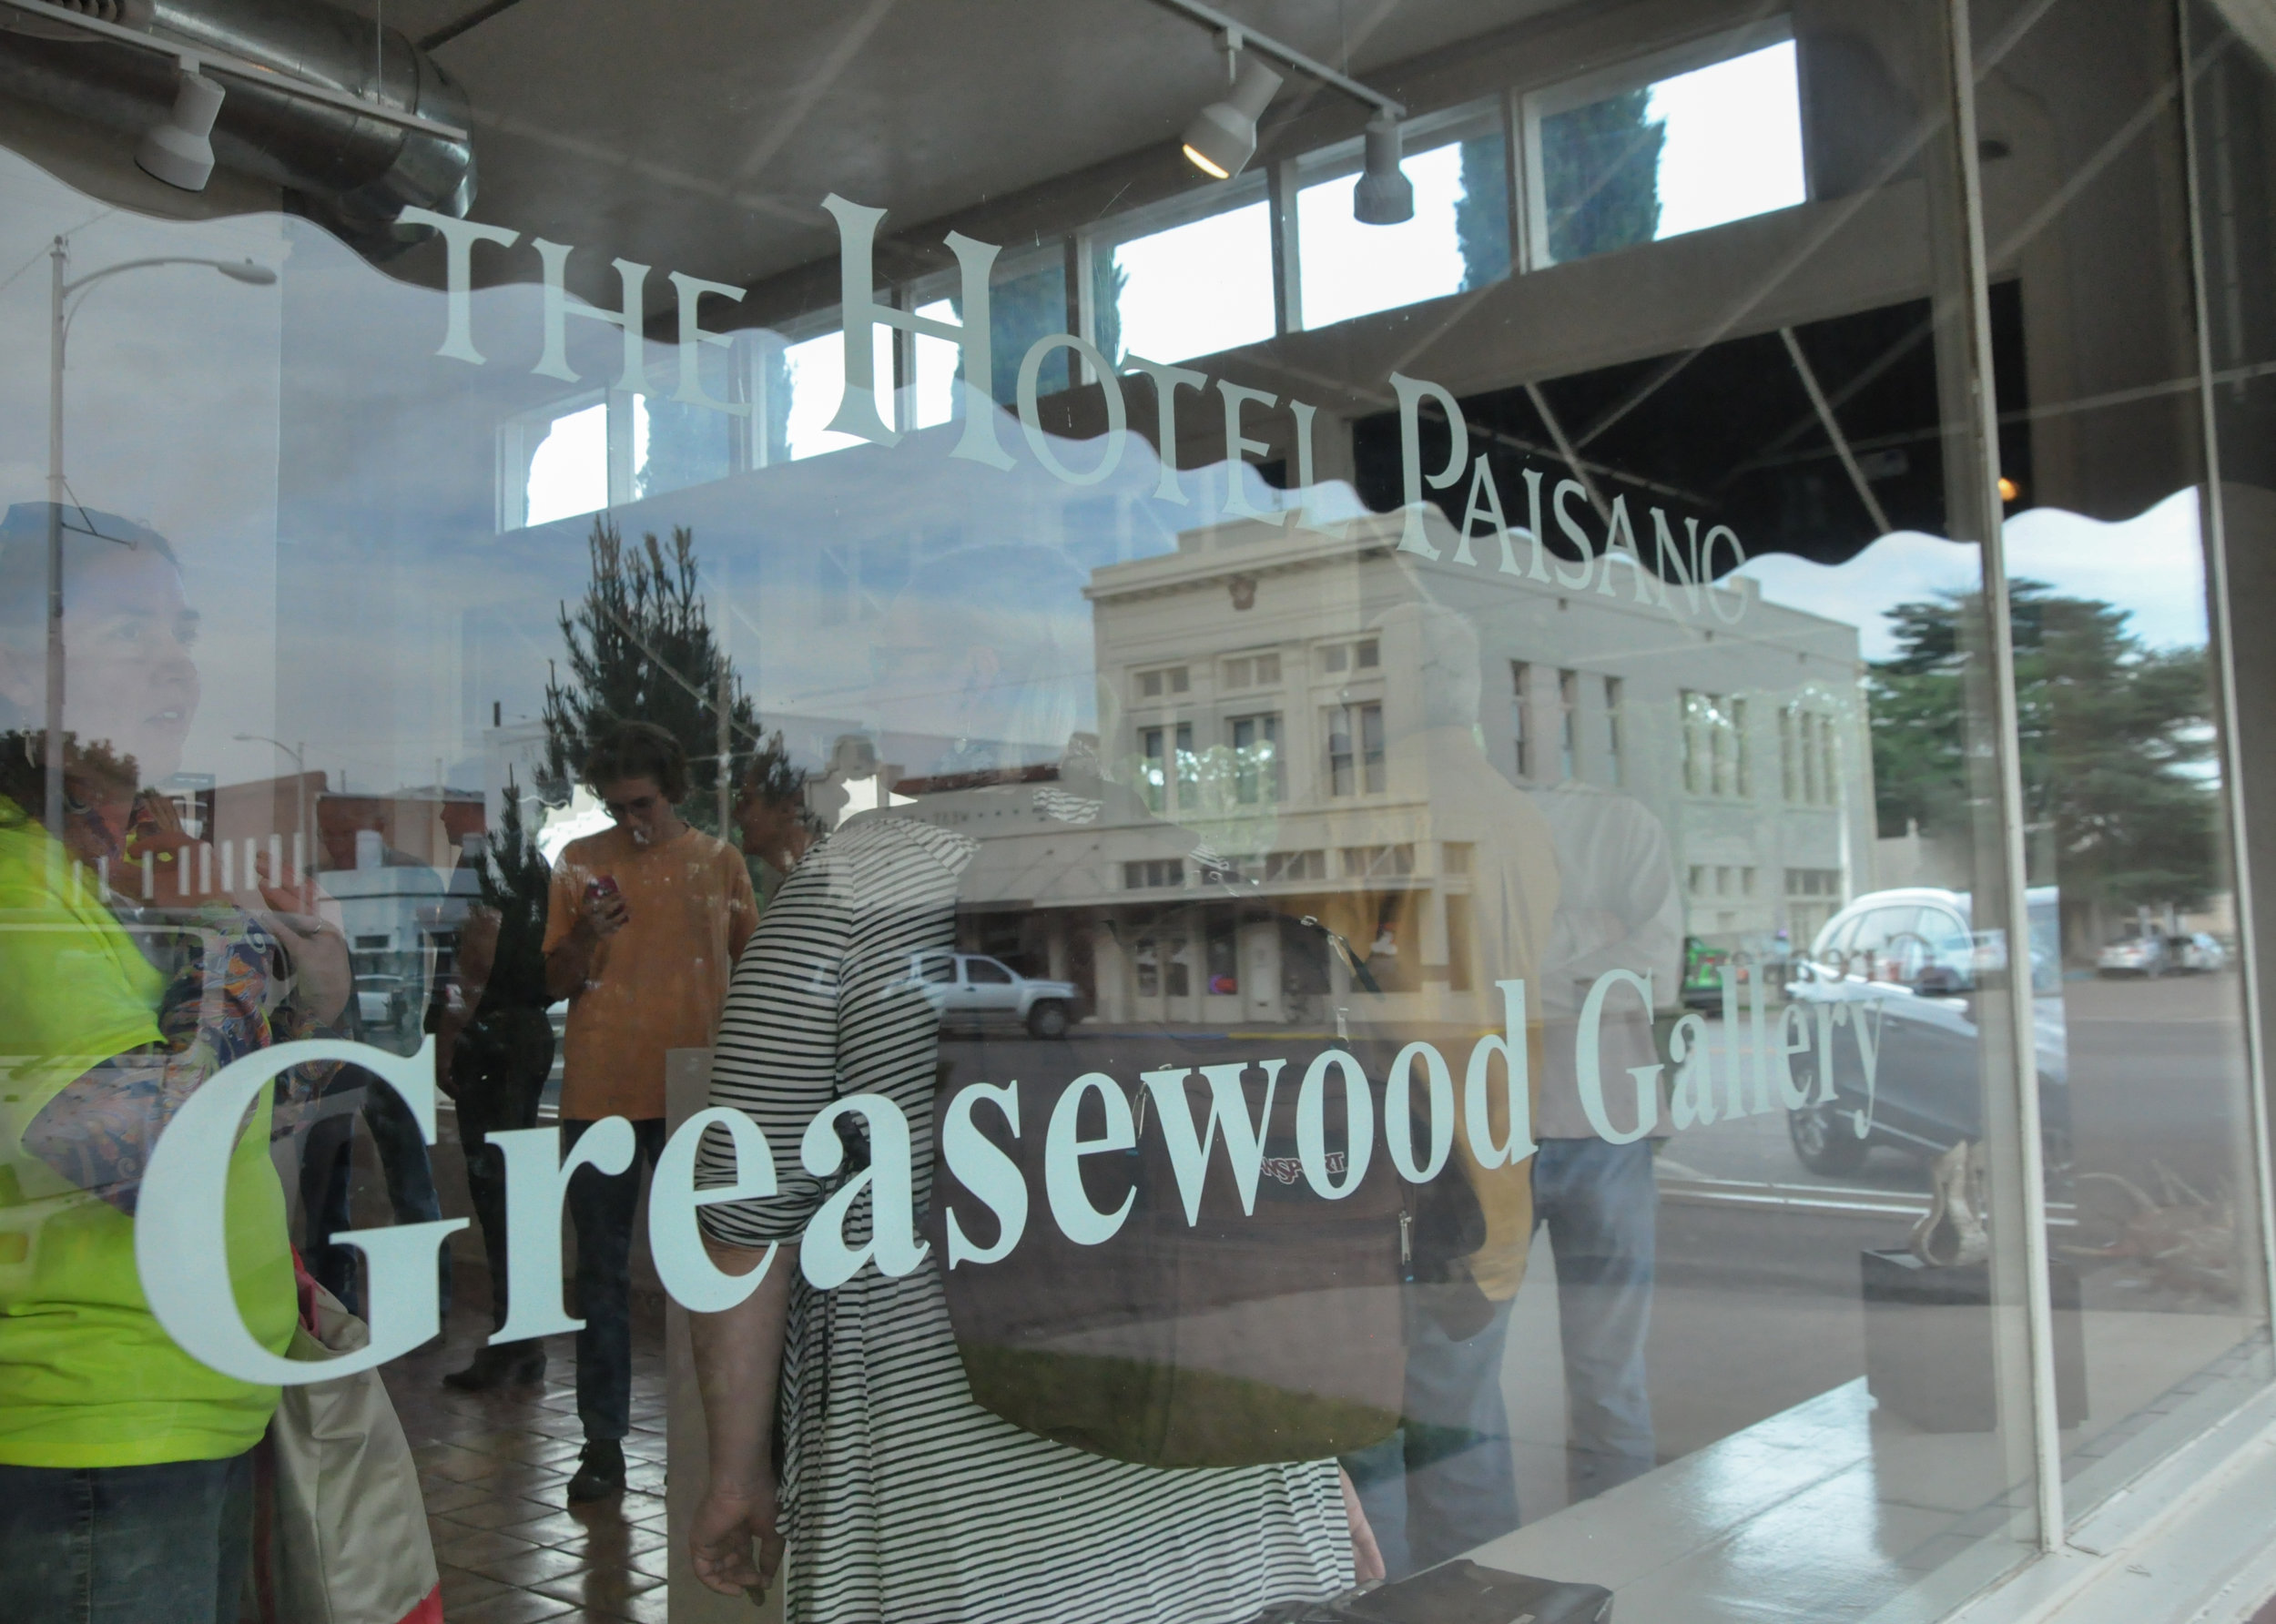 Greasewood Gallery - One Foot Exhibition